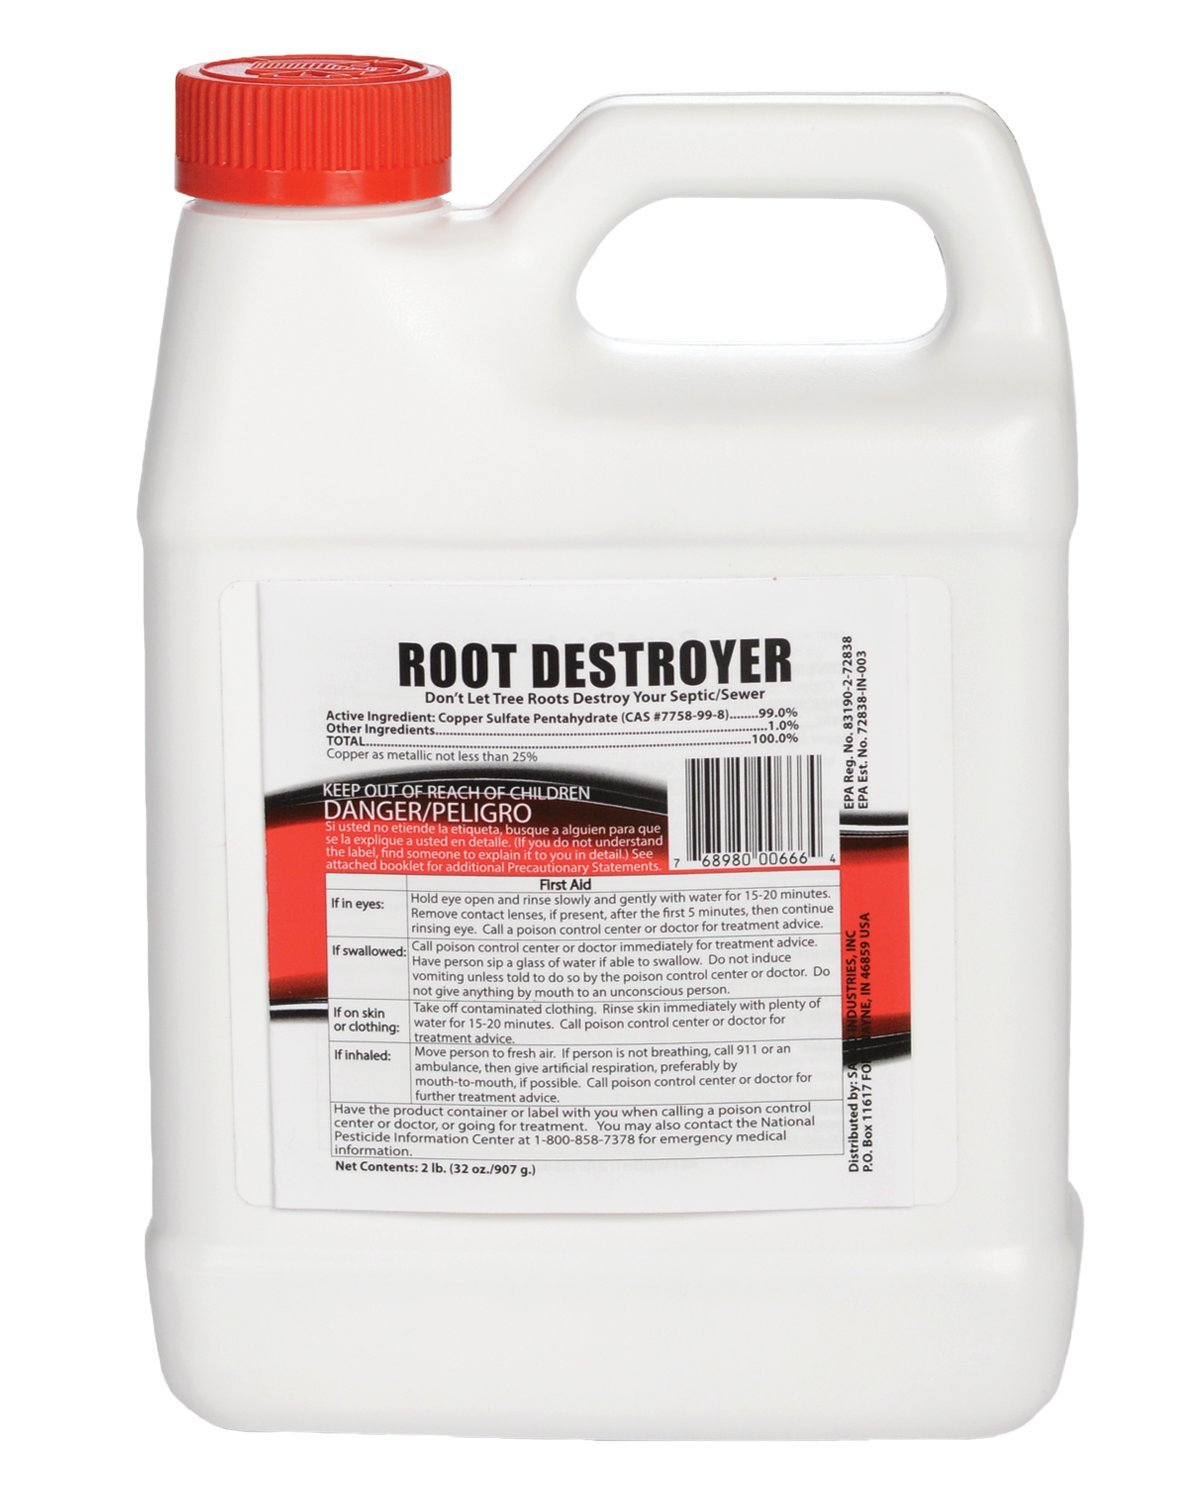 Sanco Industries Root Destroyer - 2 Pounds (32 Ounces) - Copper Sulfate Pentahydrate